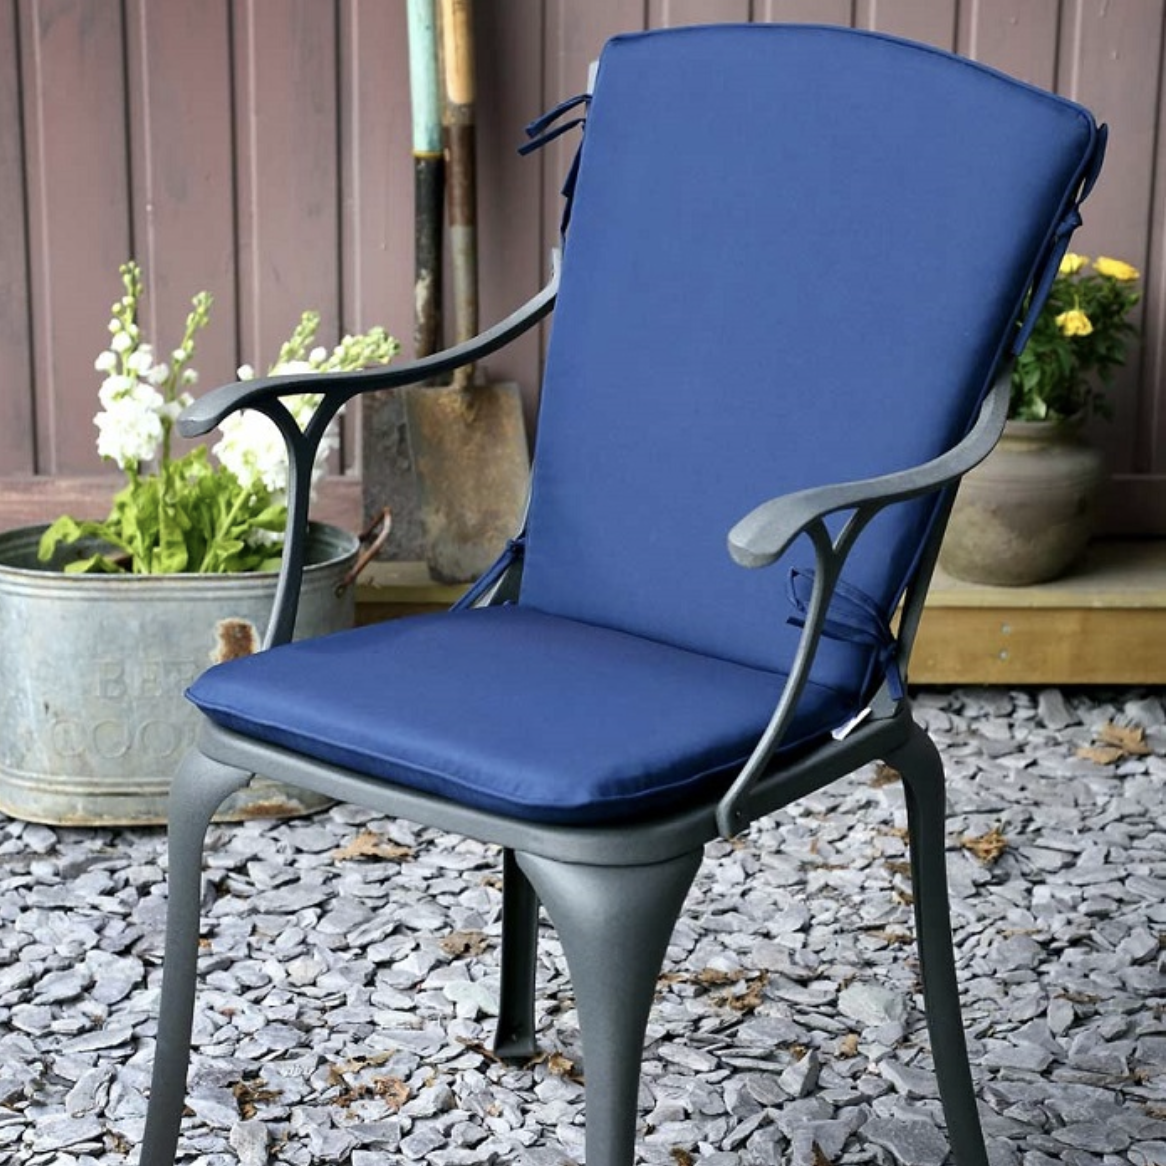 Curved Back Cushion in Blue